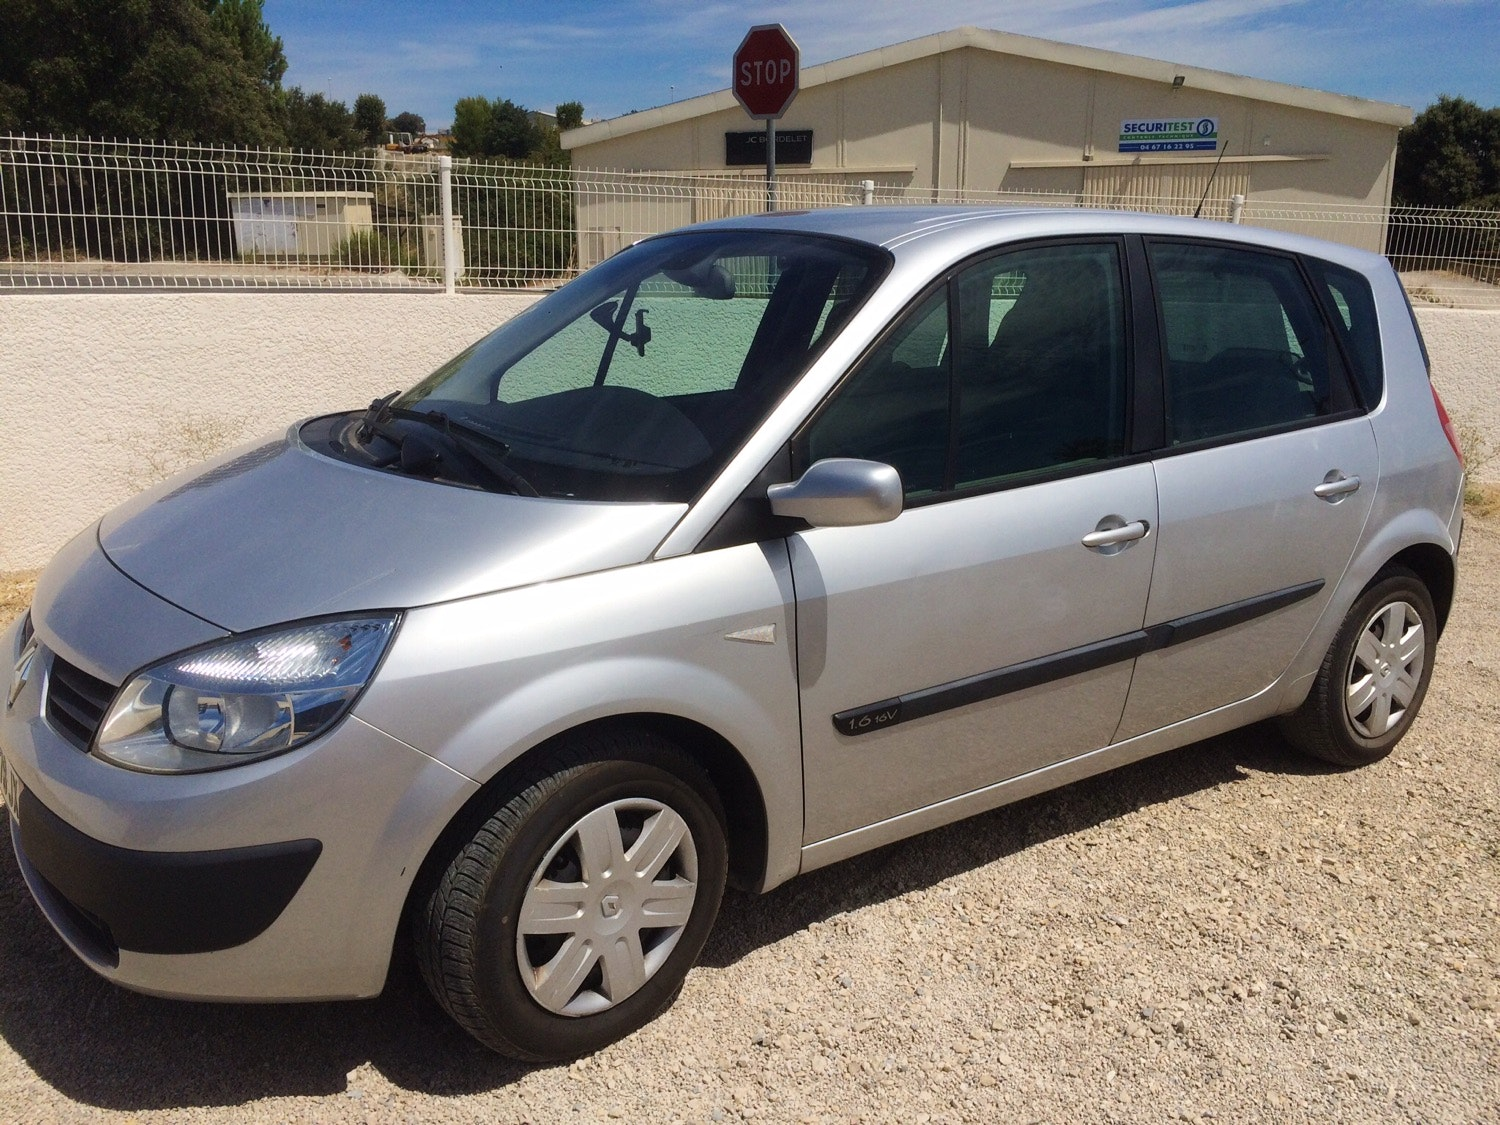 Renault Scenic 2005 5 Places , 2005, Essence, 6 places